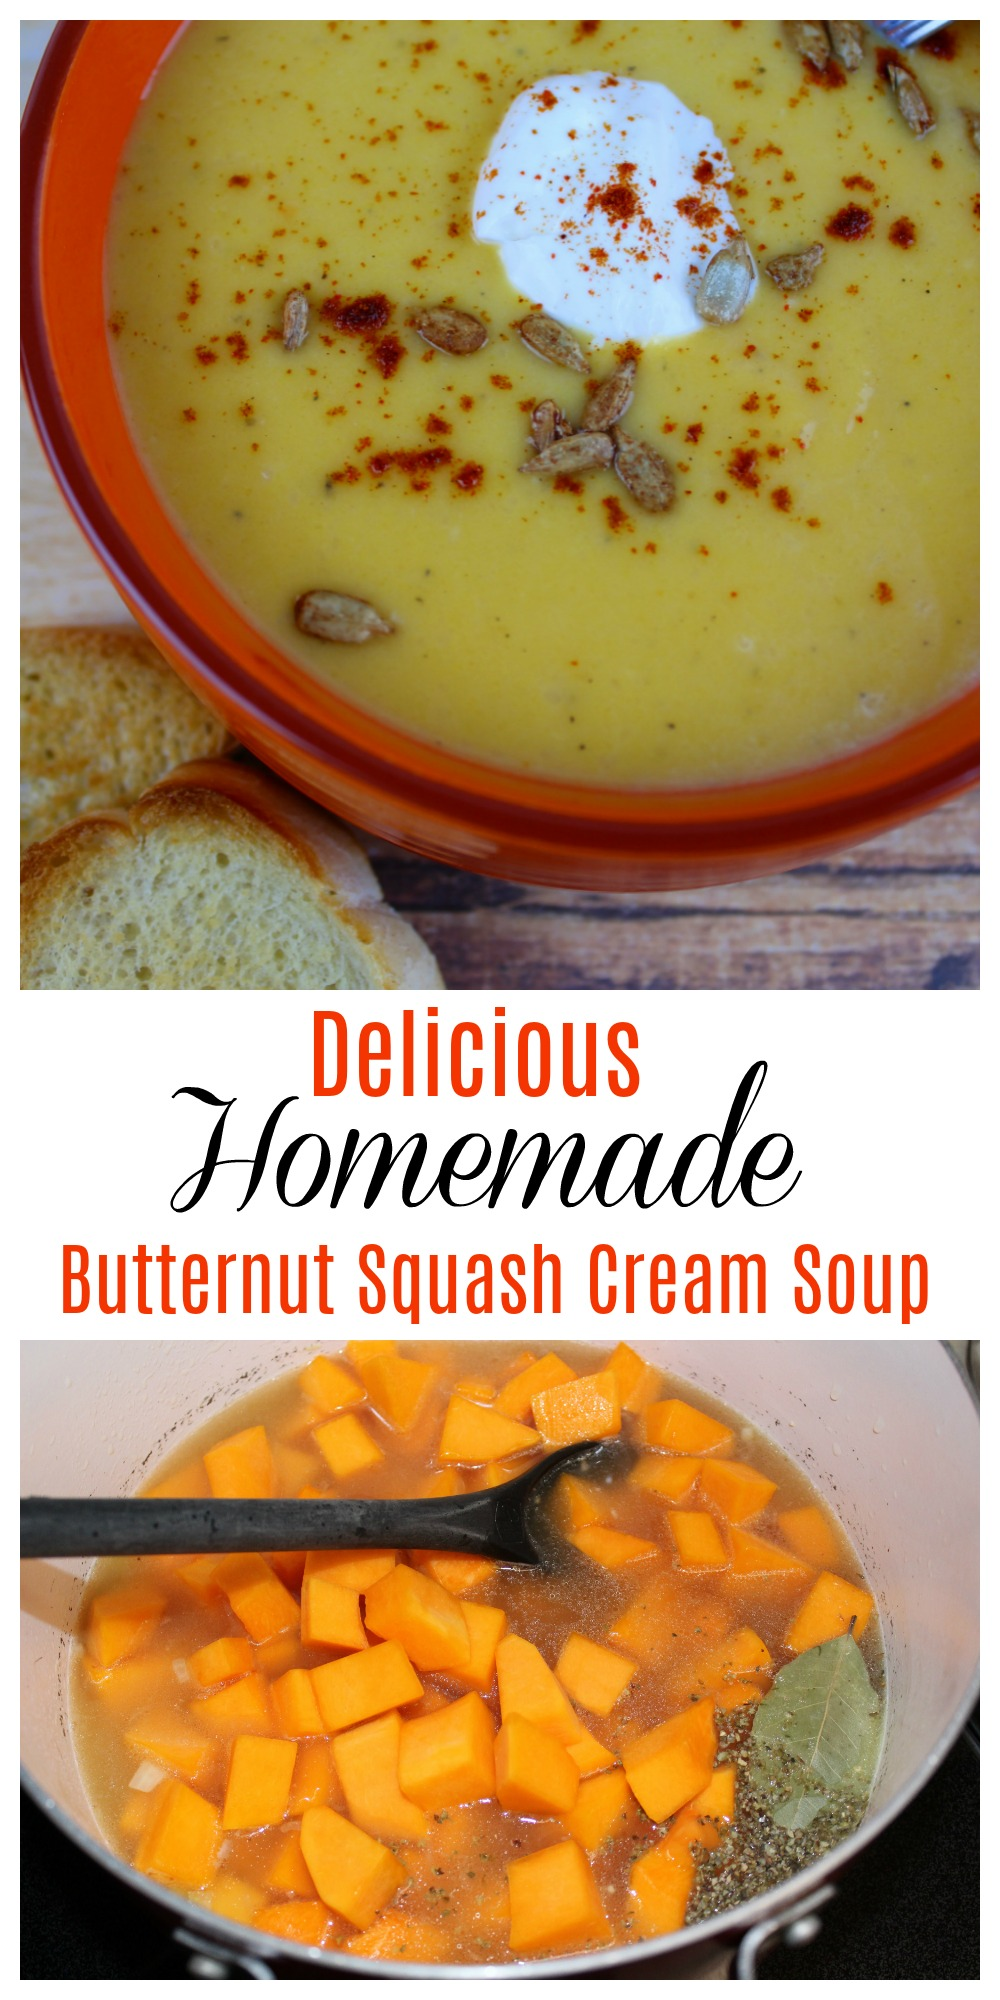 This Homemade Butternut Squash Cream Soup is a perfect fall soup recipe. It's hearty and will keep you warm on a chilly winter day.